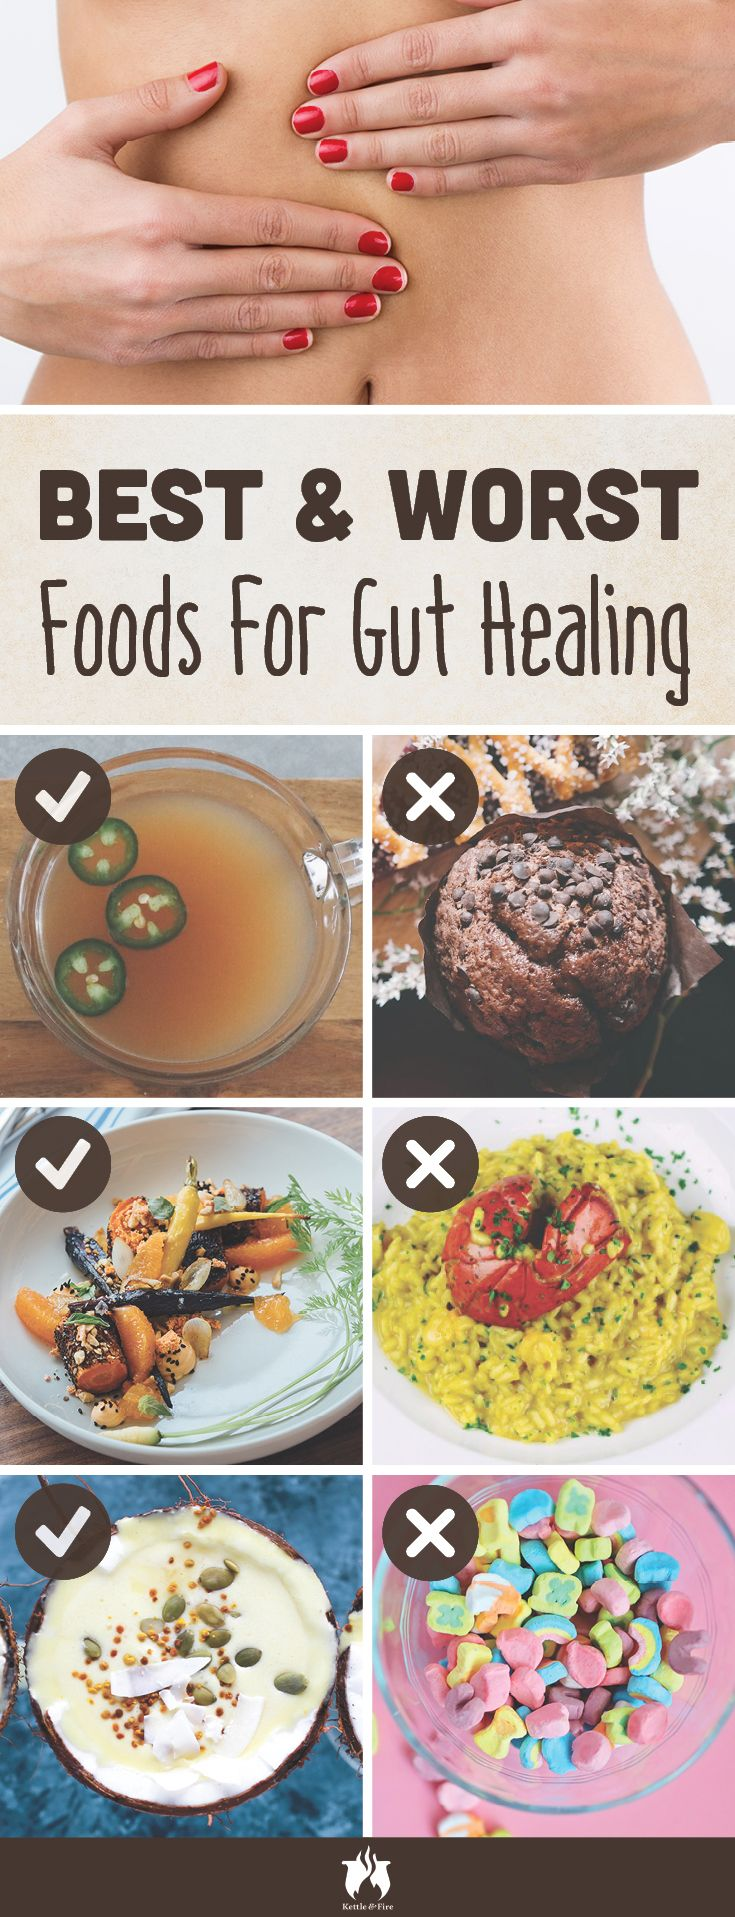 When it comes to improving your gut health, there's nothing more important than what goes on your plate. Here are the best and the worst foods for your gut.